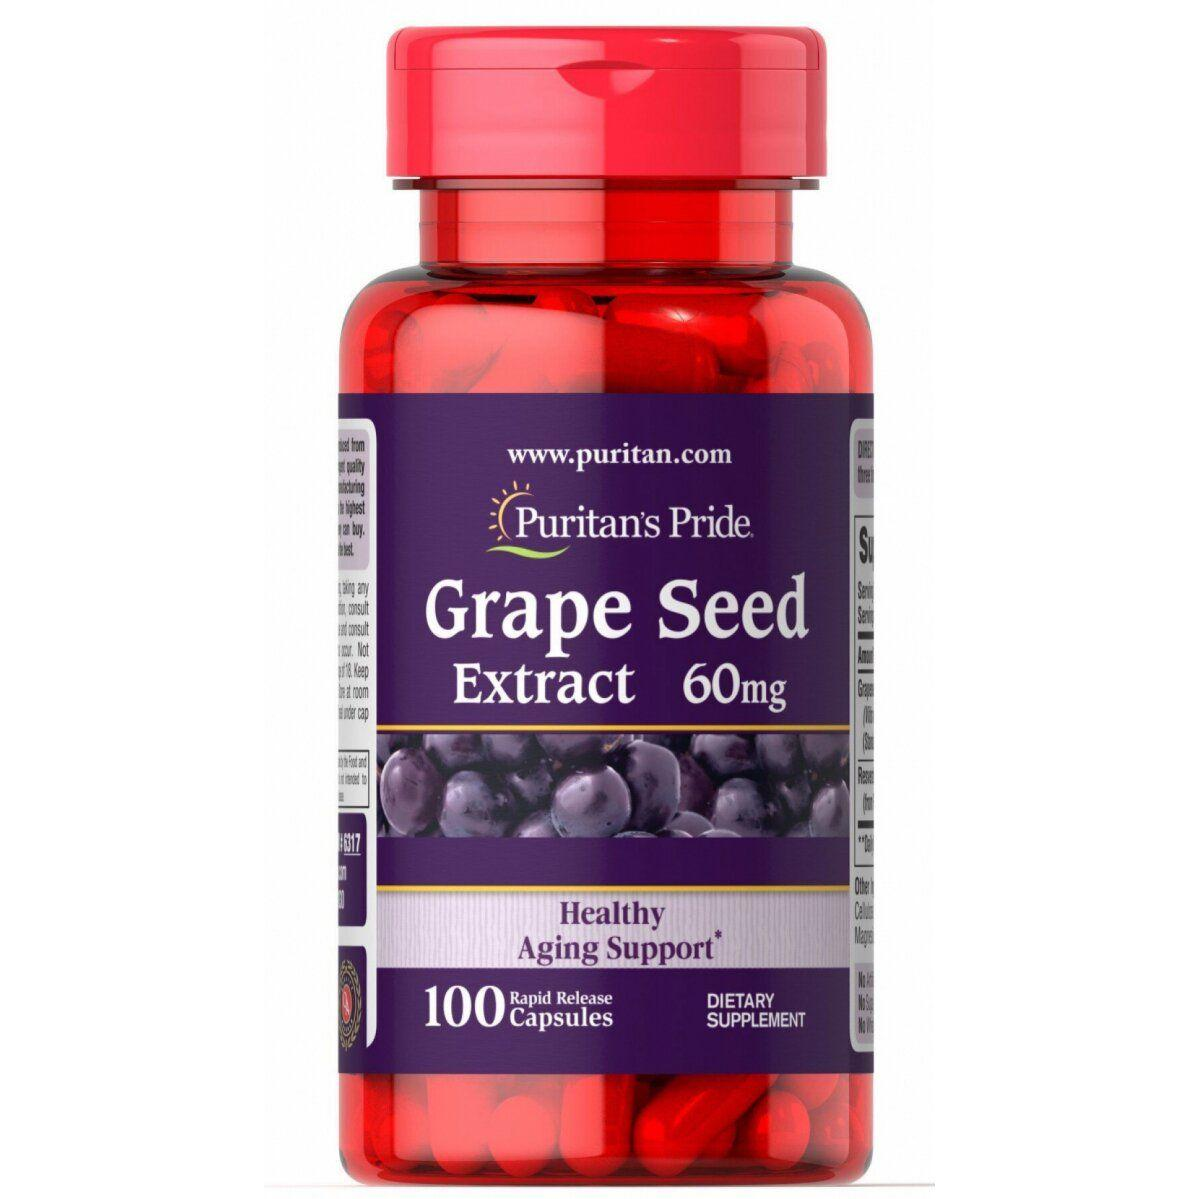 Puritan's Pride Grape Seed Extract with Resveratrol, Экстракт Виноградных Косточек, Ресвератрол (100 капс.)